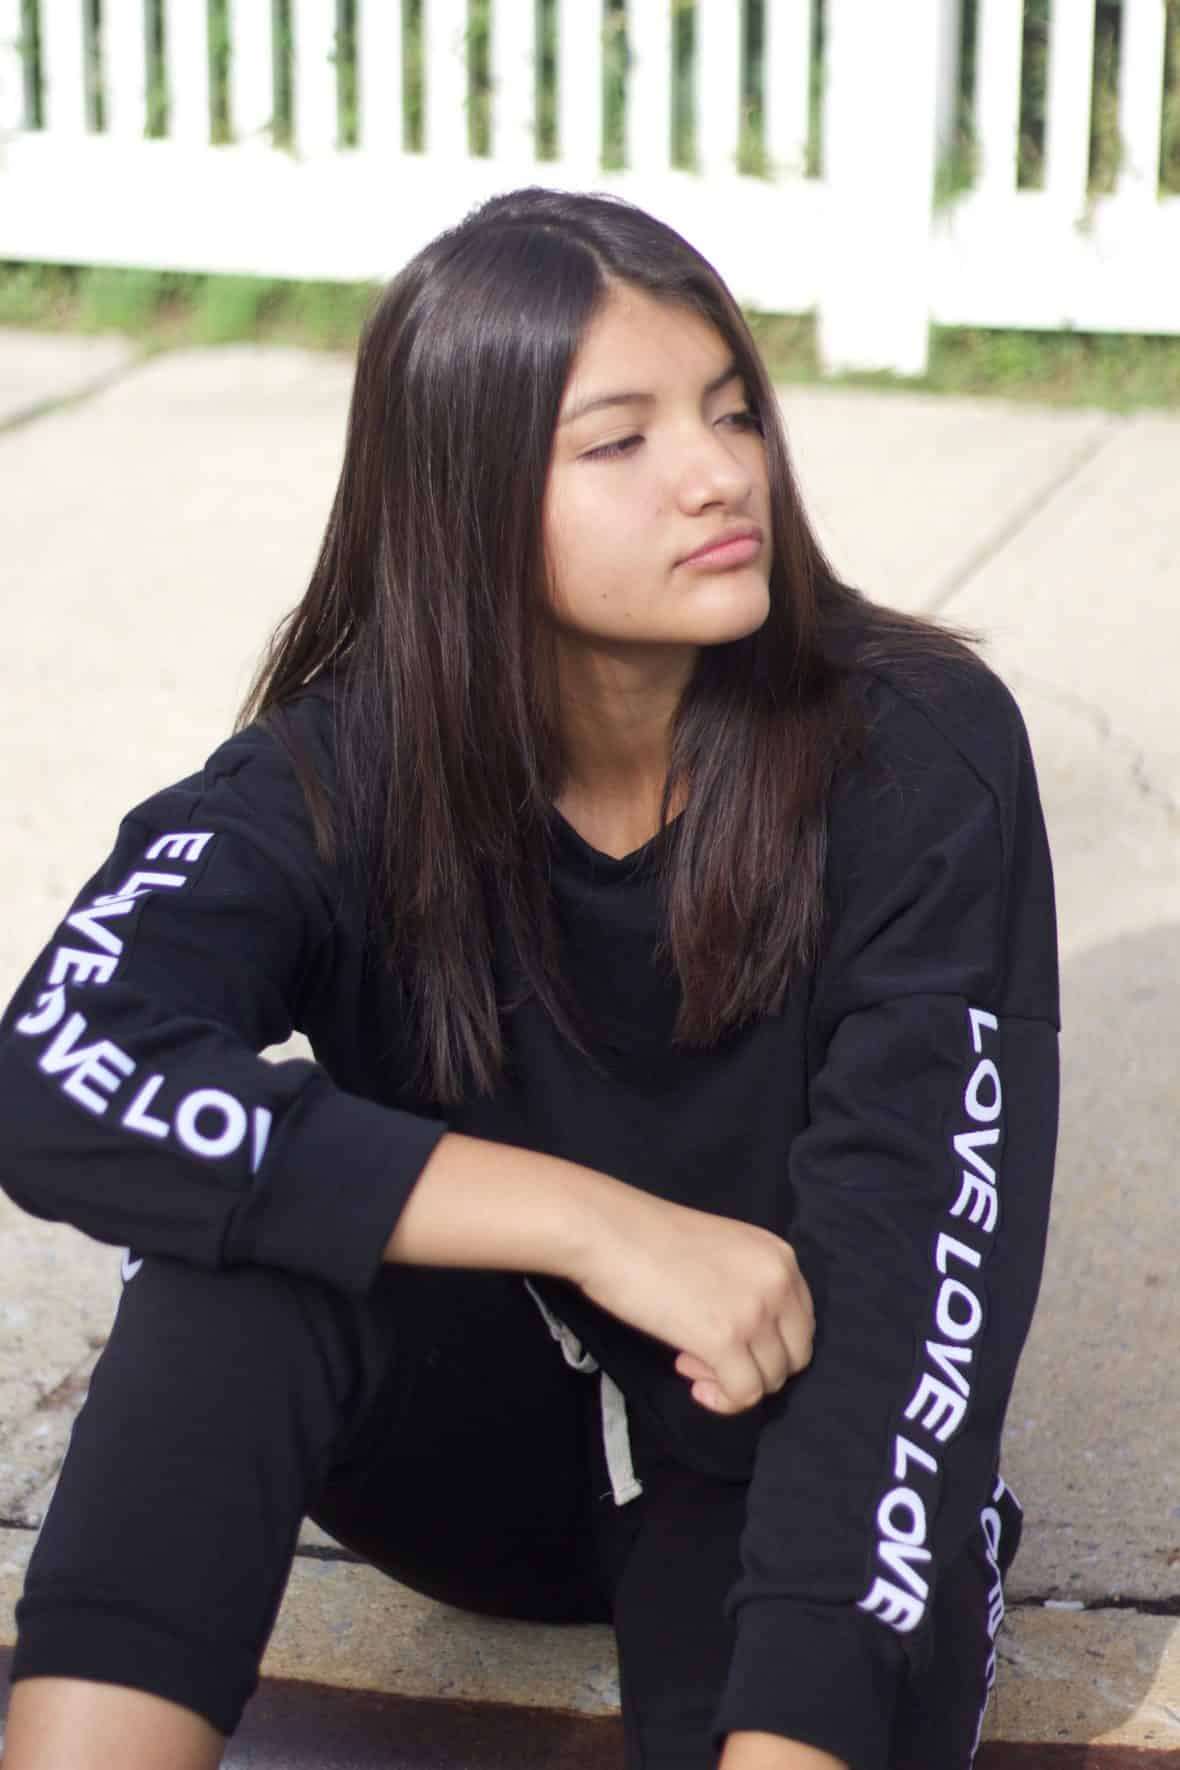 Nathaly wears a black and white tracksuit.